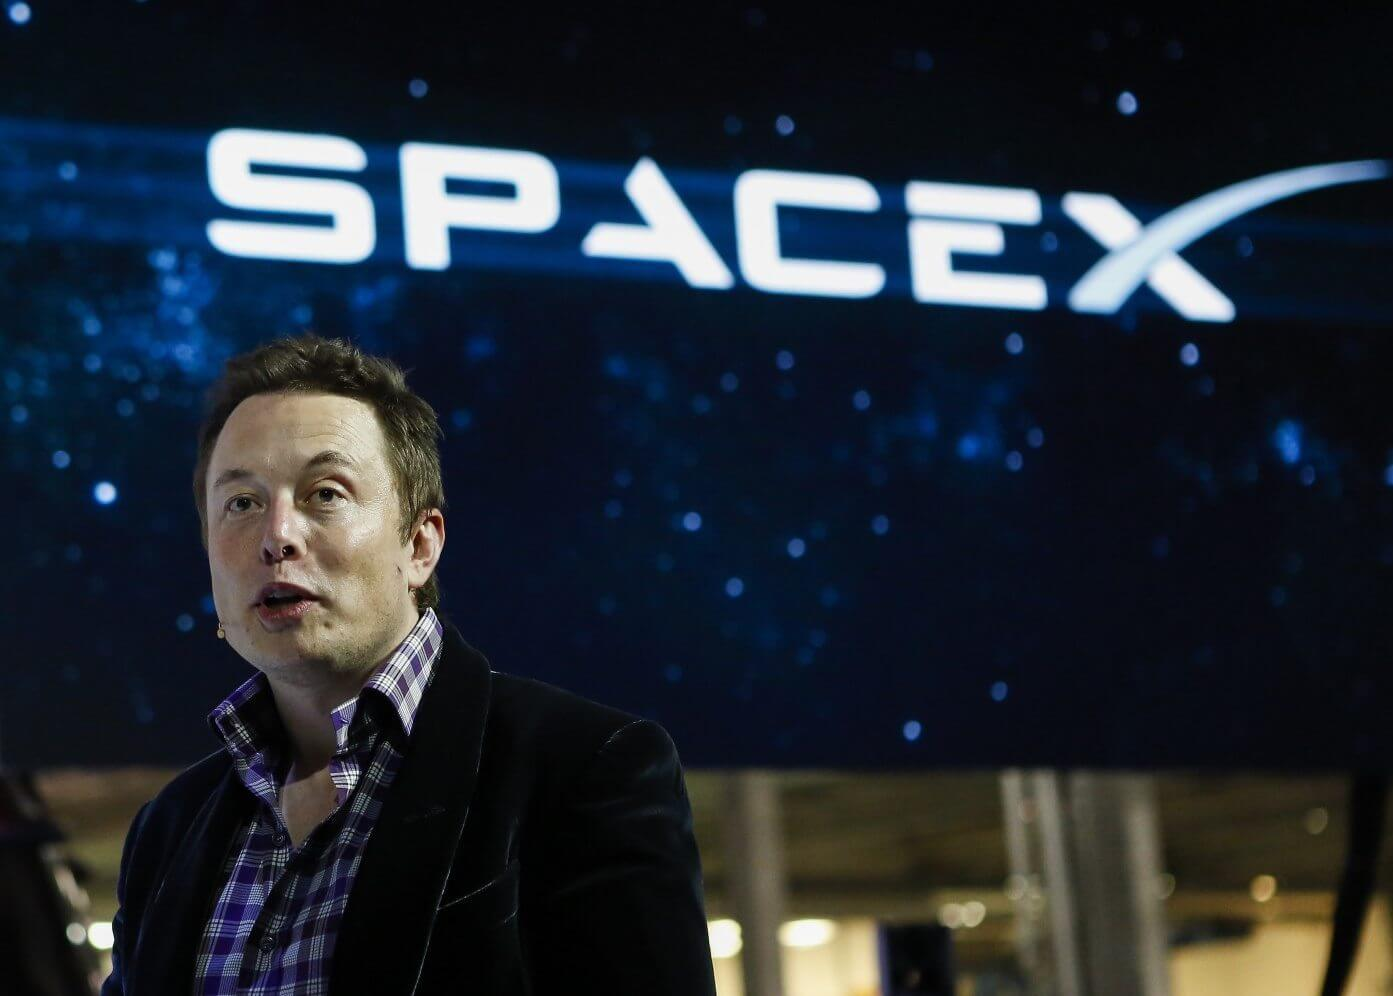 Elon Musk, chief executive officer of Space Exploration Technologies Corp. (SpaceX), speaks at the unveiling of the Manned Dragon V2 Space Taxi in Hawthorne, California, U.S., on Thursday, May 29, 2014. The Dragon V2 manned space taxi, an upgraded version of the unmanned spacecraft Dragon, will be capable of sending a mix of cargo and up to seven crew members to the International Space Station. Photographer: Patrick T. Fallon/Bloomberg via Getty Images